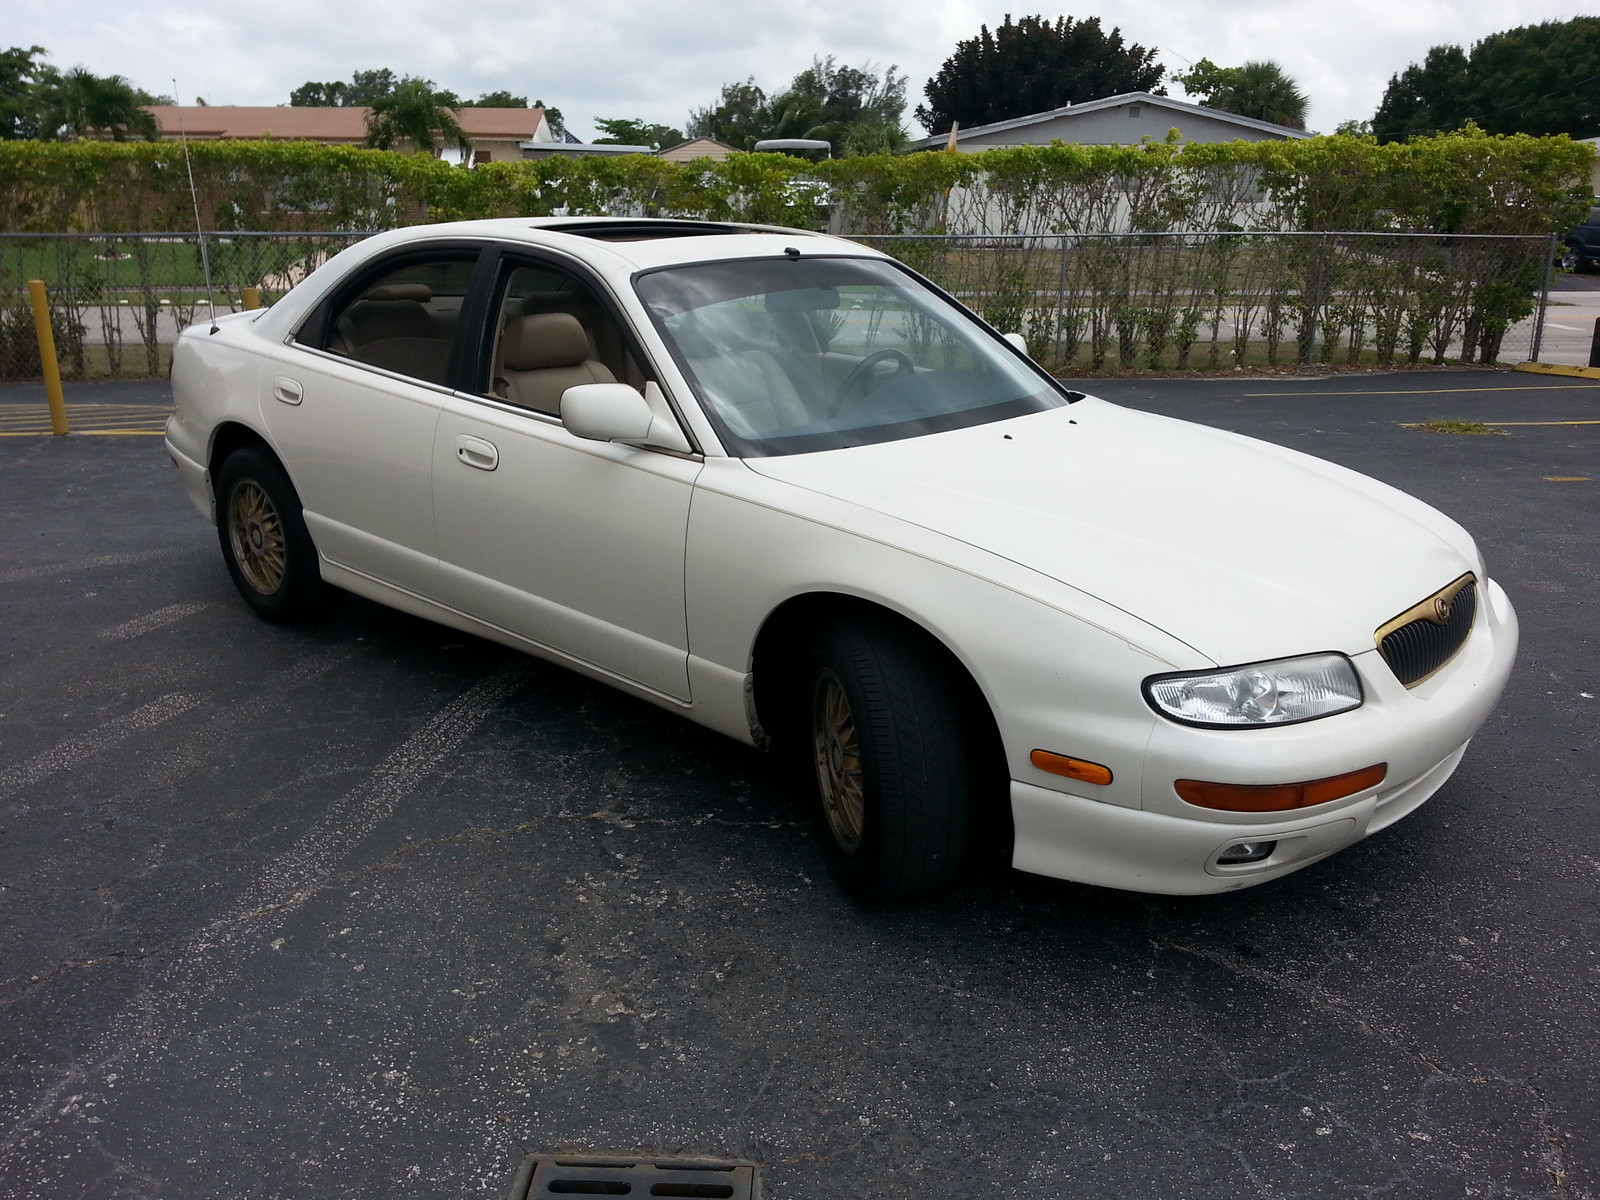 Picture of 1998 Mazda Millenia 4 Dr STD Sedan